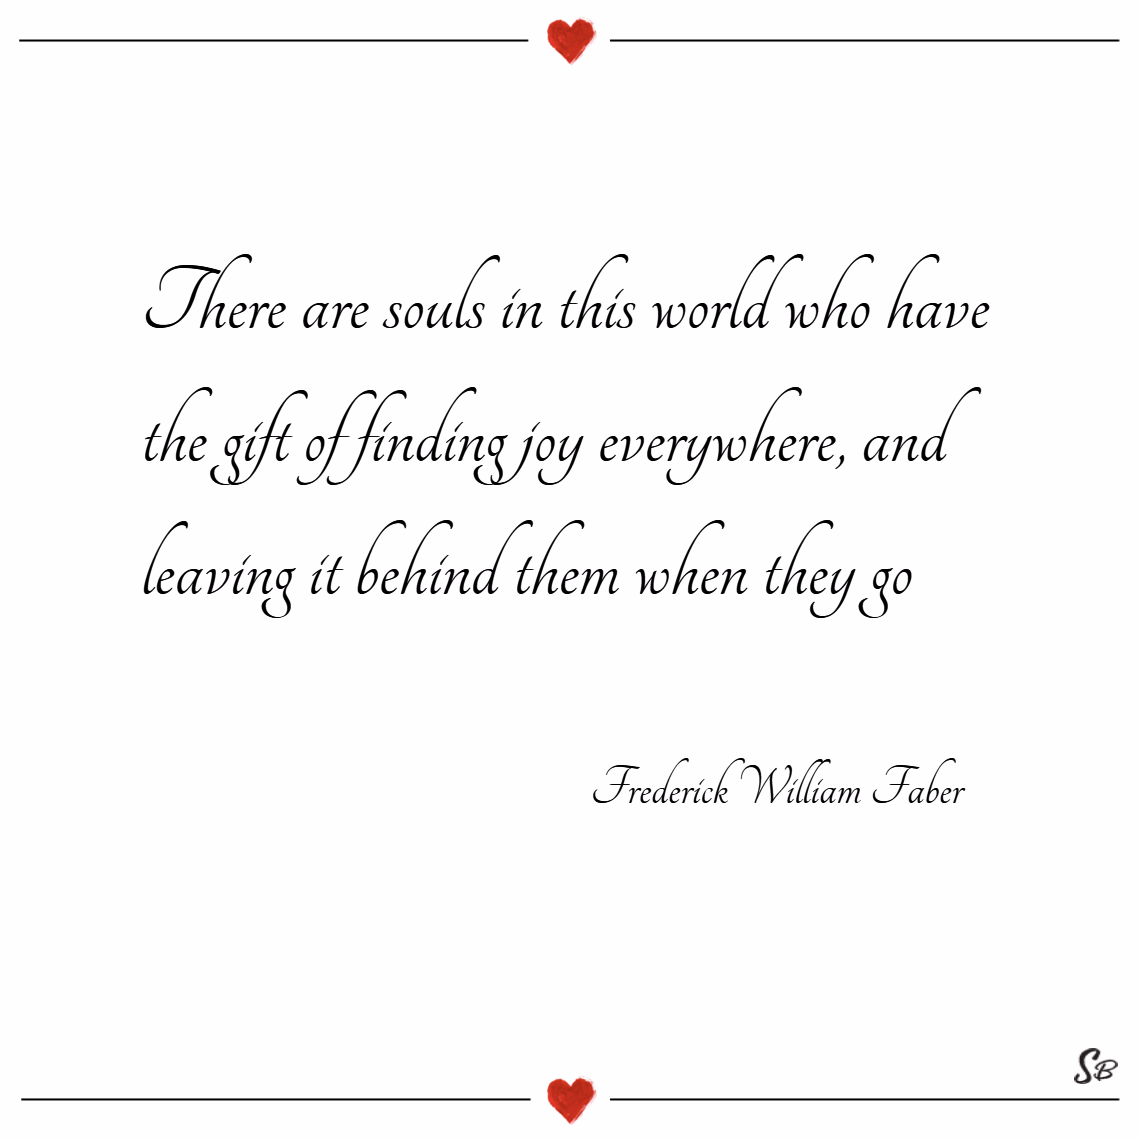 There are souls in this world who have the gift of finding joy everywhere, and leaving it behind them when they go. – frederick william faber